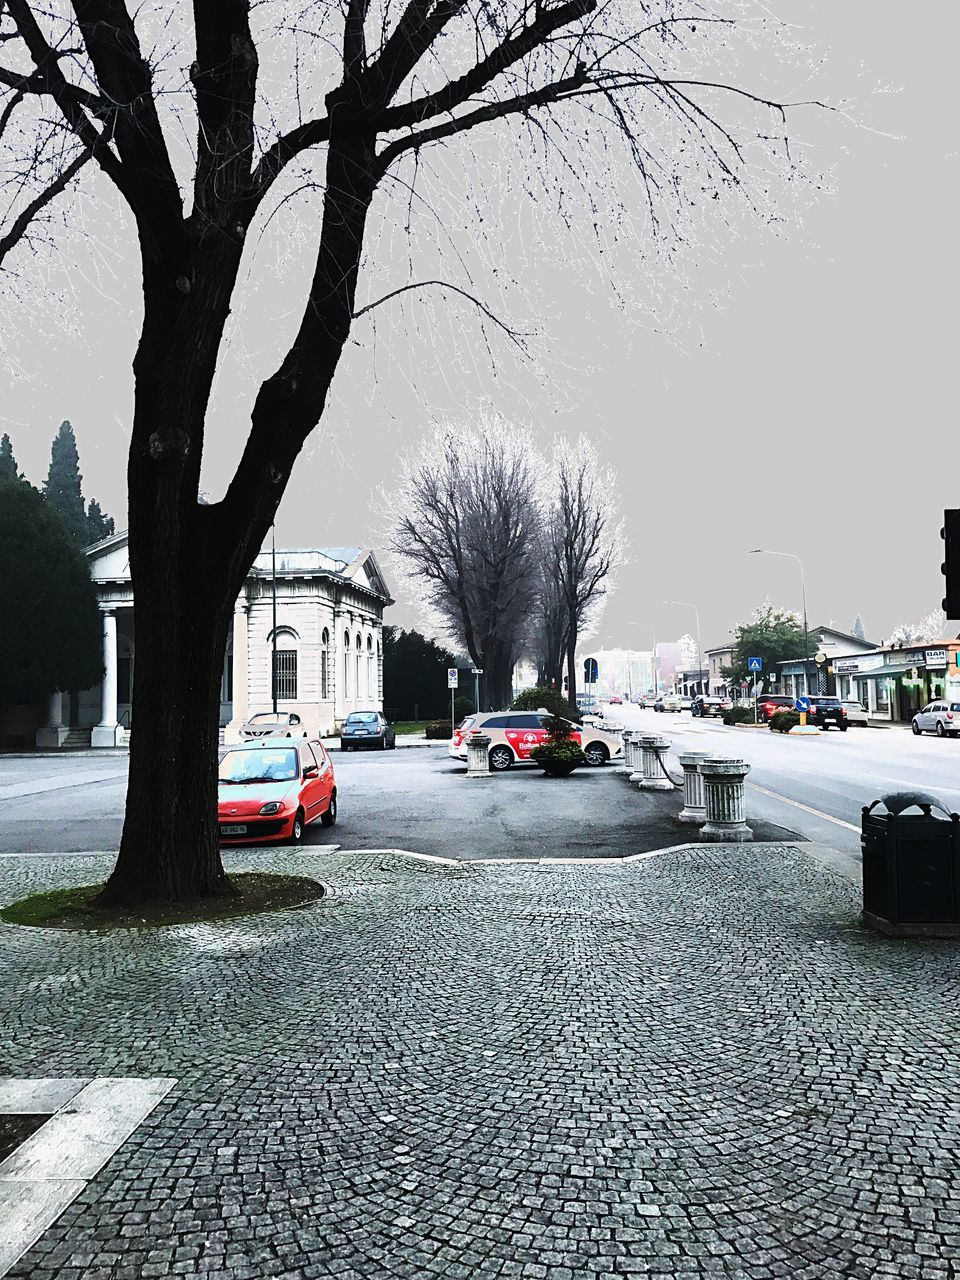 tree, car, street, built structure, architecture, transportation, land vehicle, road, building exterior, bare tree, city, mode of transport, outdoors, day, city life, sidewalk, tree trunk, no people, sky, nature